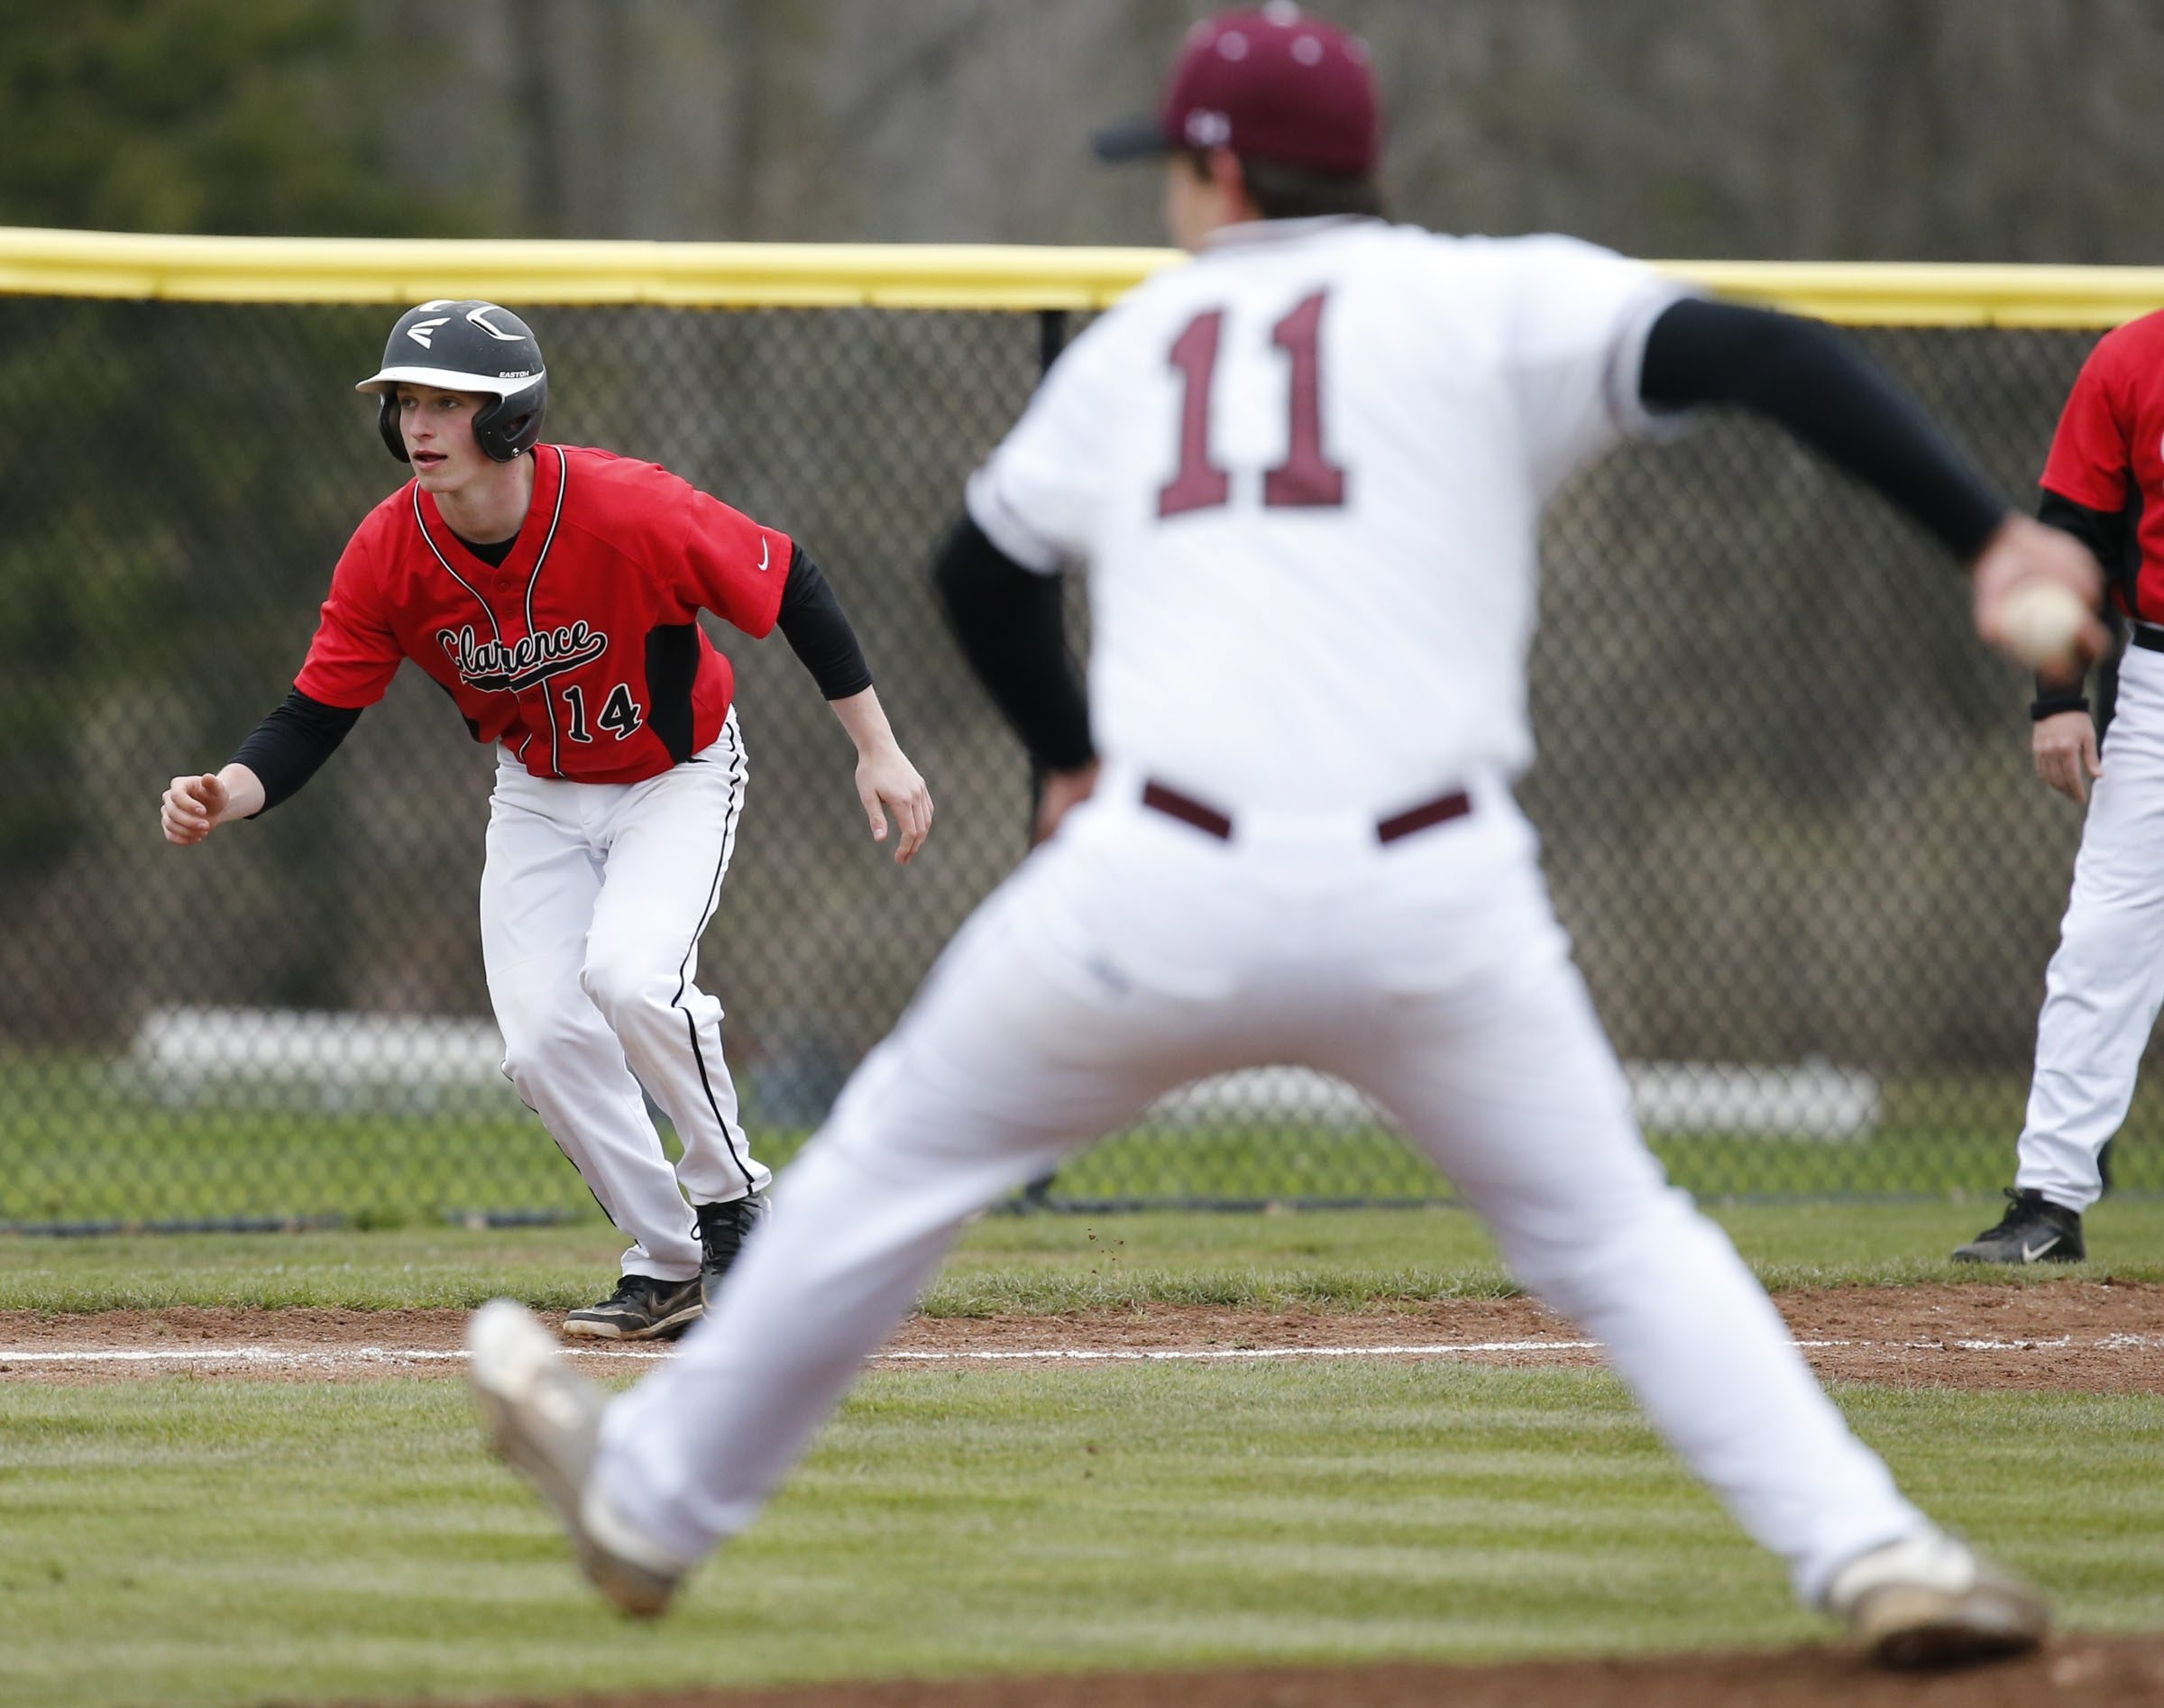 Zach Randall of Clarence leads off third base in the first inning at Orchard Park on Monday. The host Quakers won, 9-4, to remain undefeated.